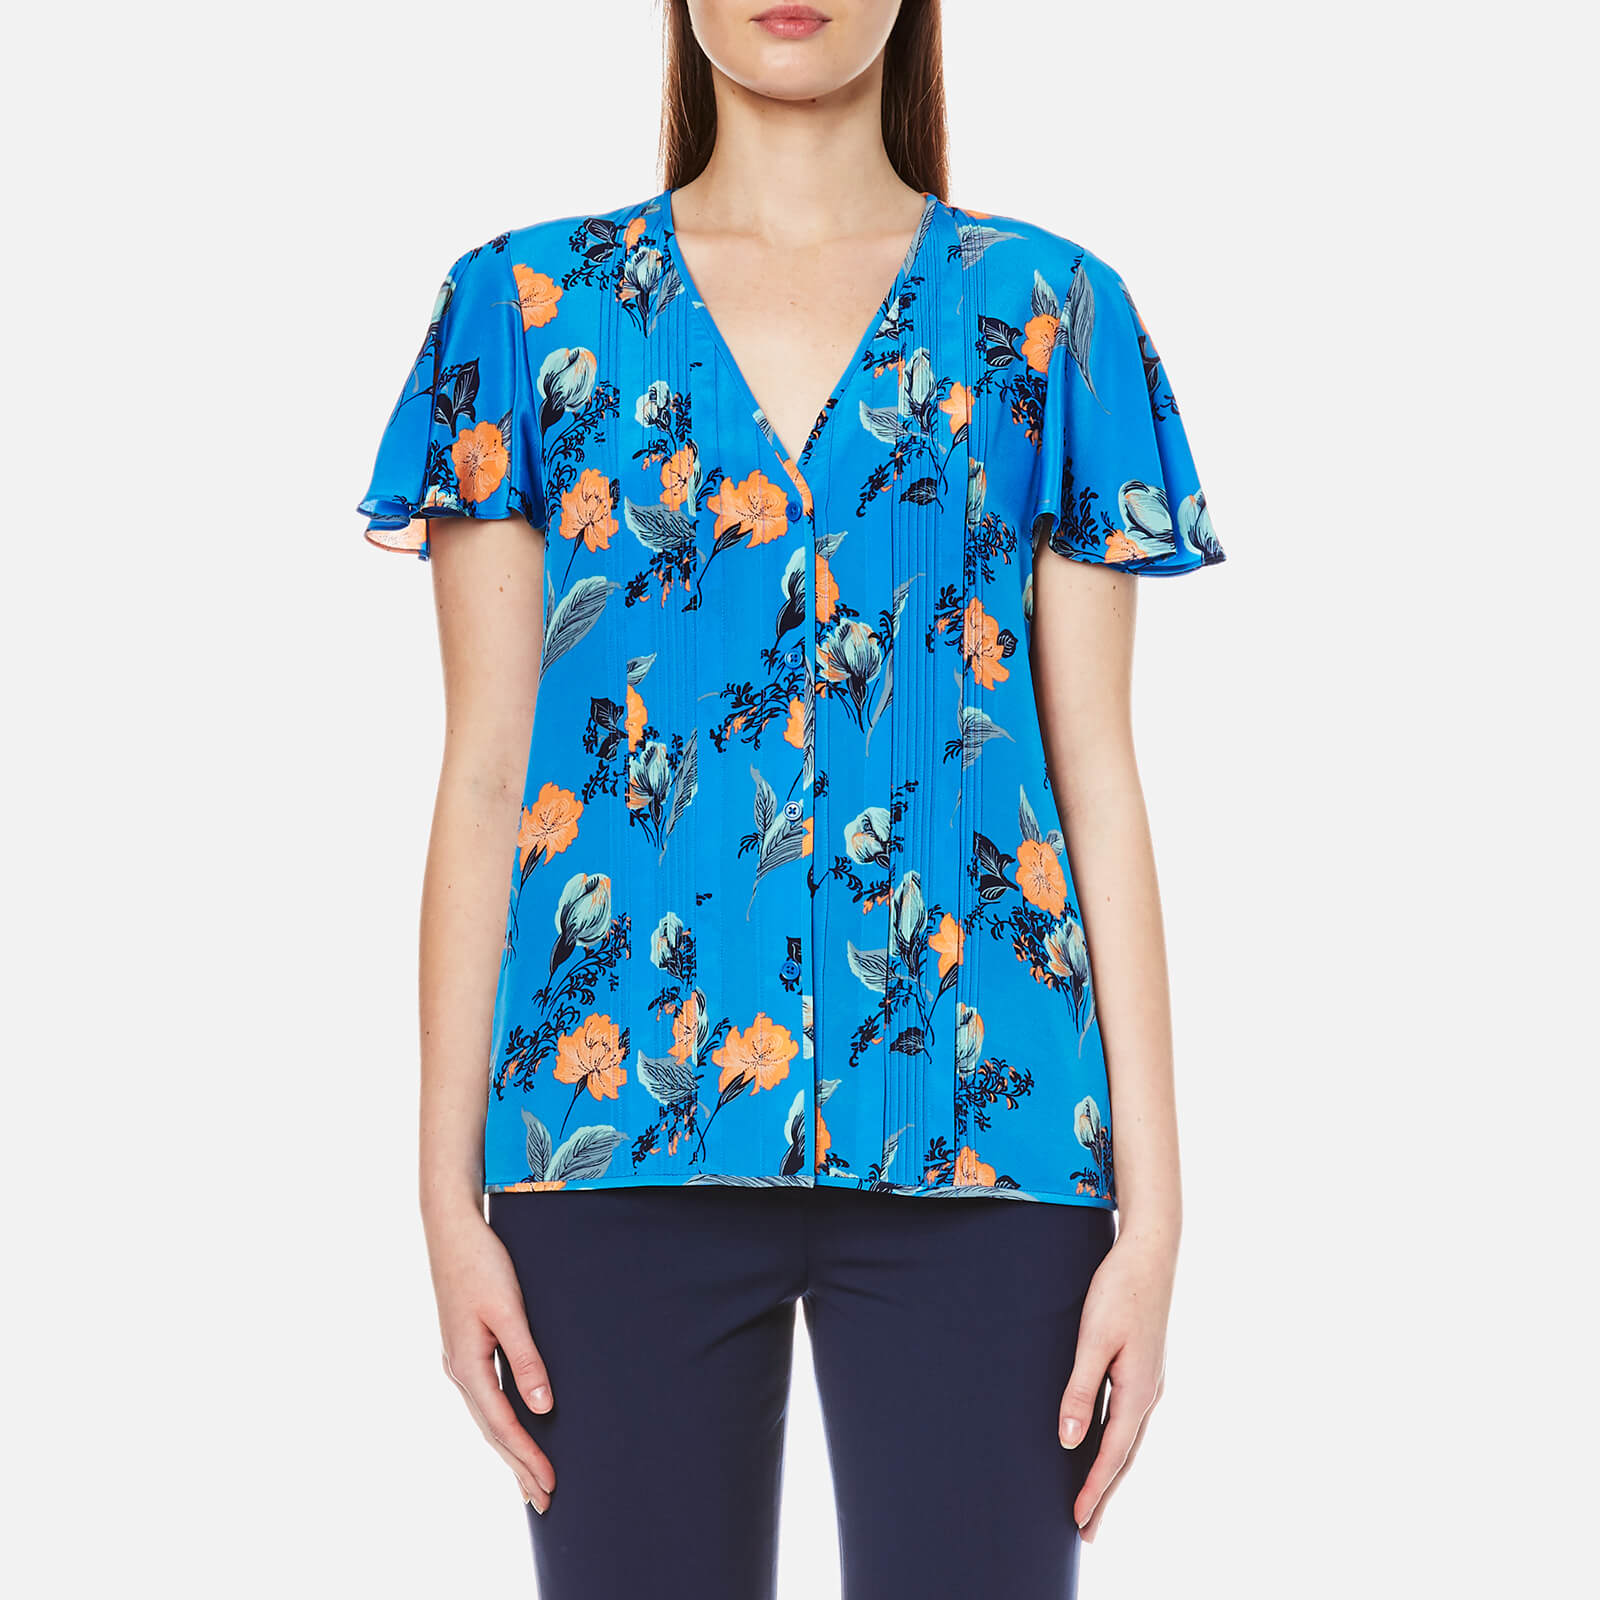 43e4e510b4f5a Diane von Furstenberg Women s Flutter Sleeve Blouse - Silese Tile Blue -  Free UK Delivery over £50